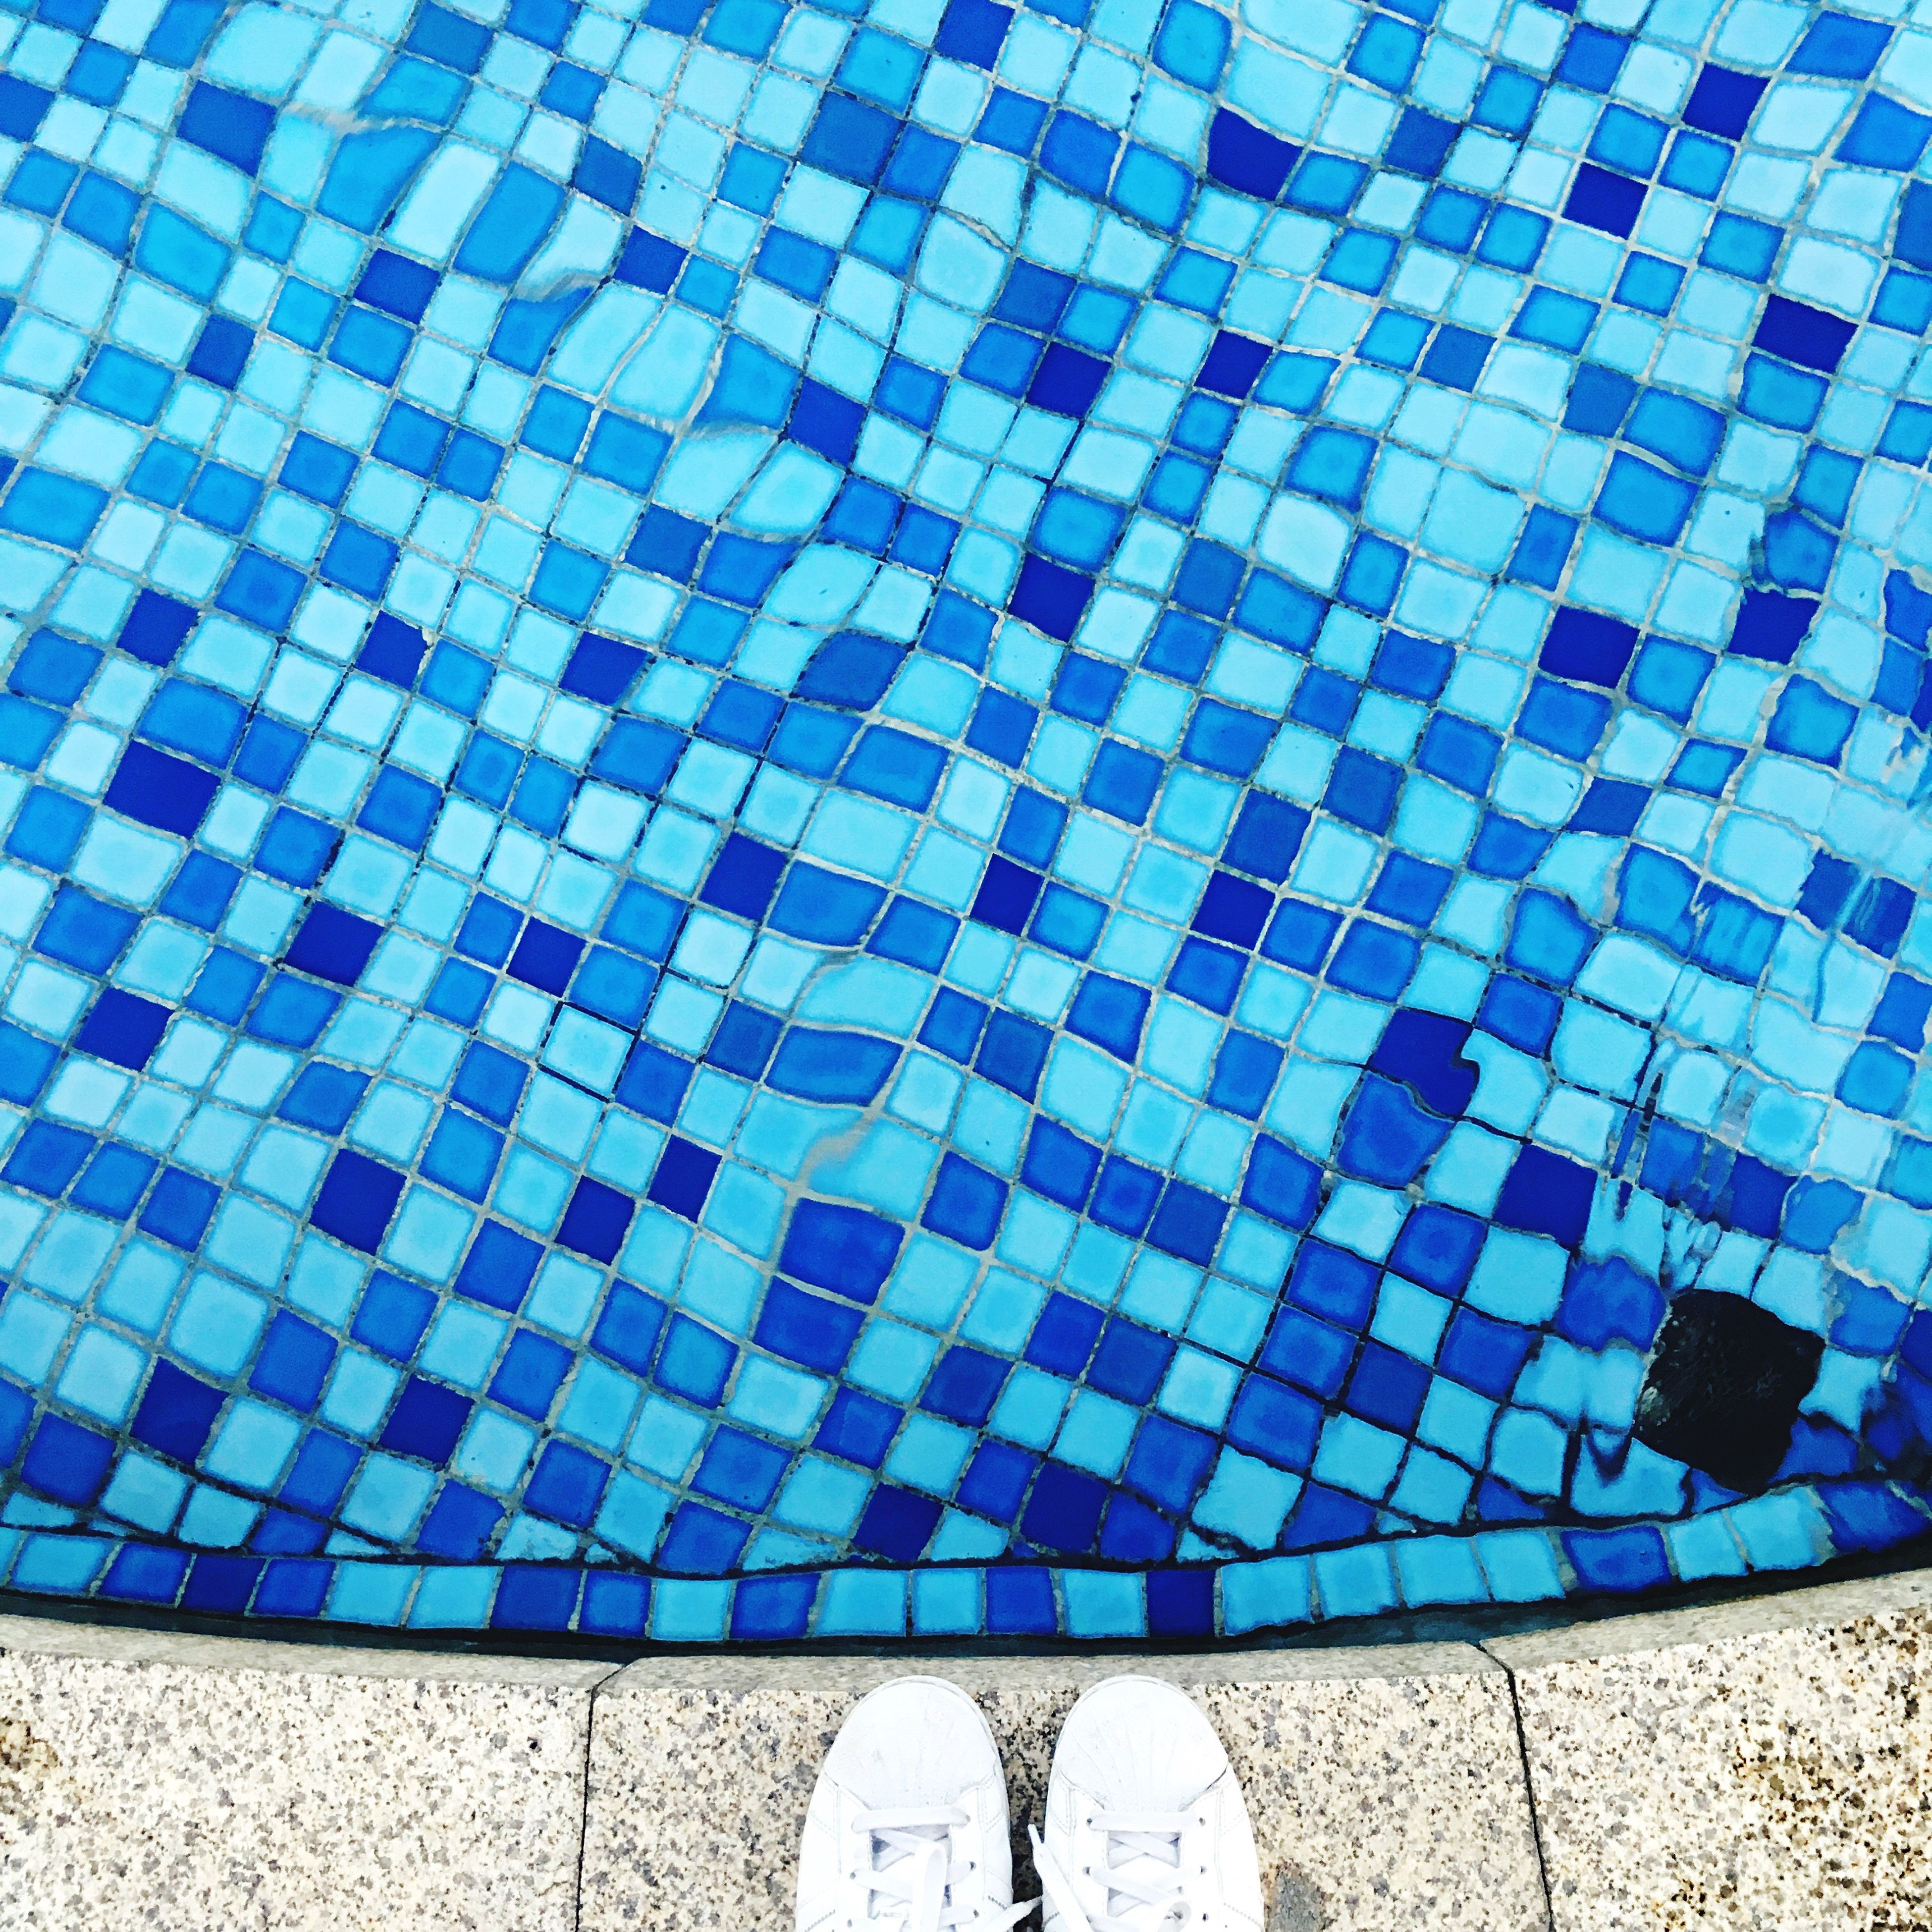 tiled floor, pattern, tile, blue, flooring, design, full frame, backgrounds, geometric shape, multi colored, repetition, no people, day, close-up, checked pattern, side by side